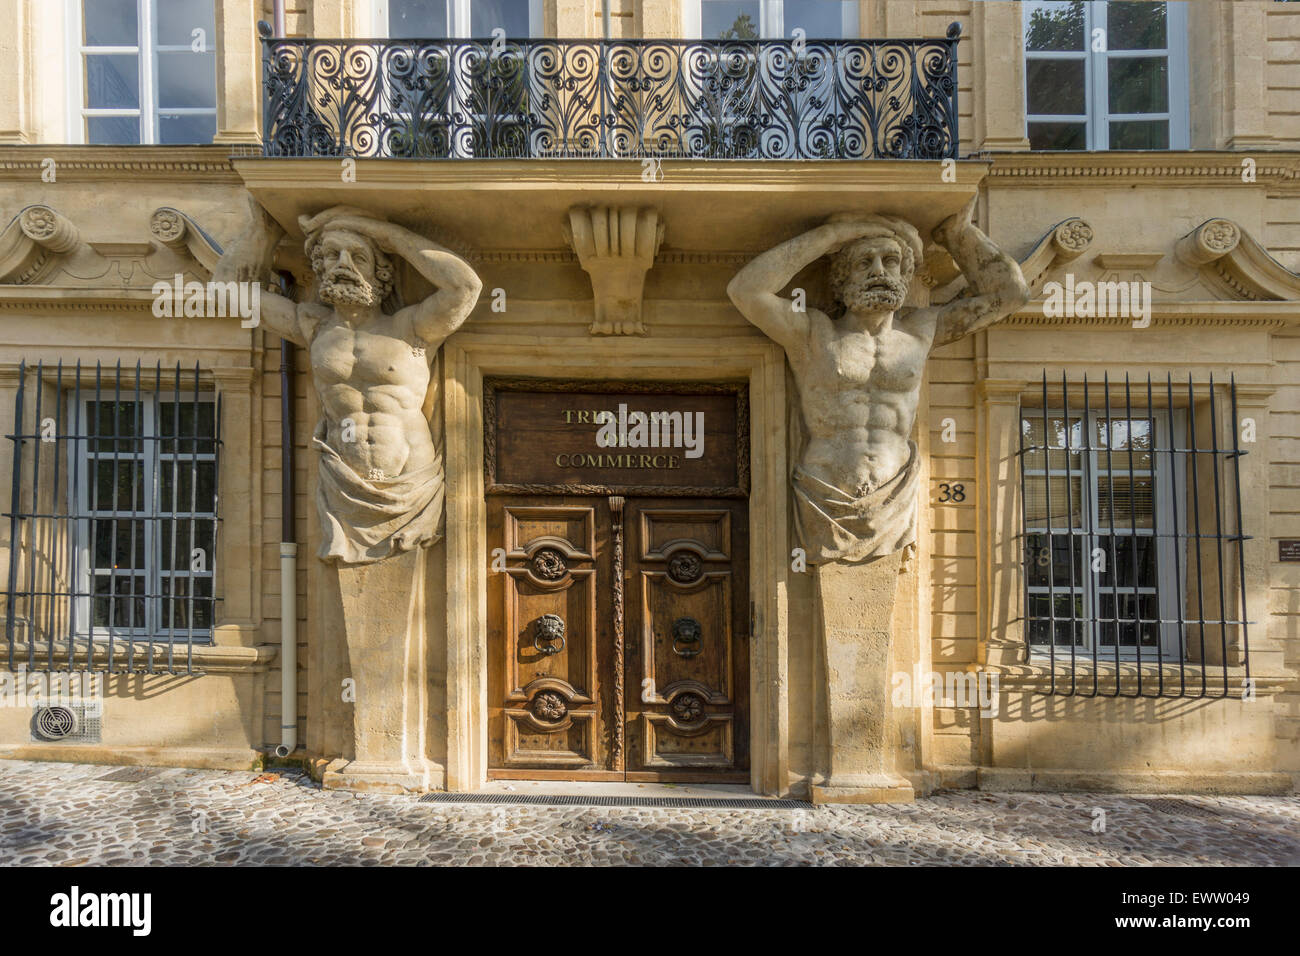 Dorway with caryatids, Tribunal de Commerce, Atlas Firgures,   Cours Mirabeau, Aix-en-Provence, Bouches-du-RhoneStock Photo